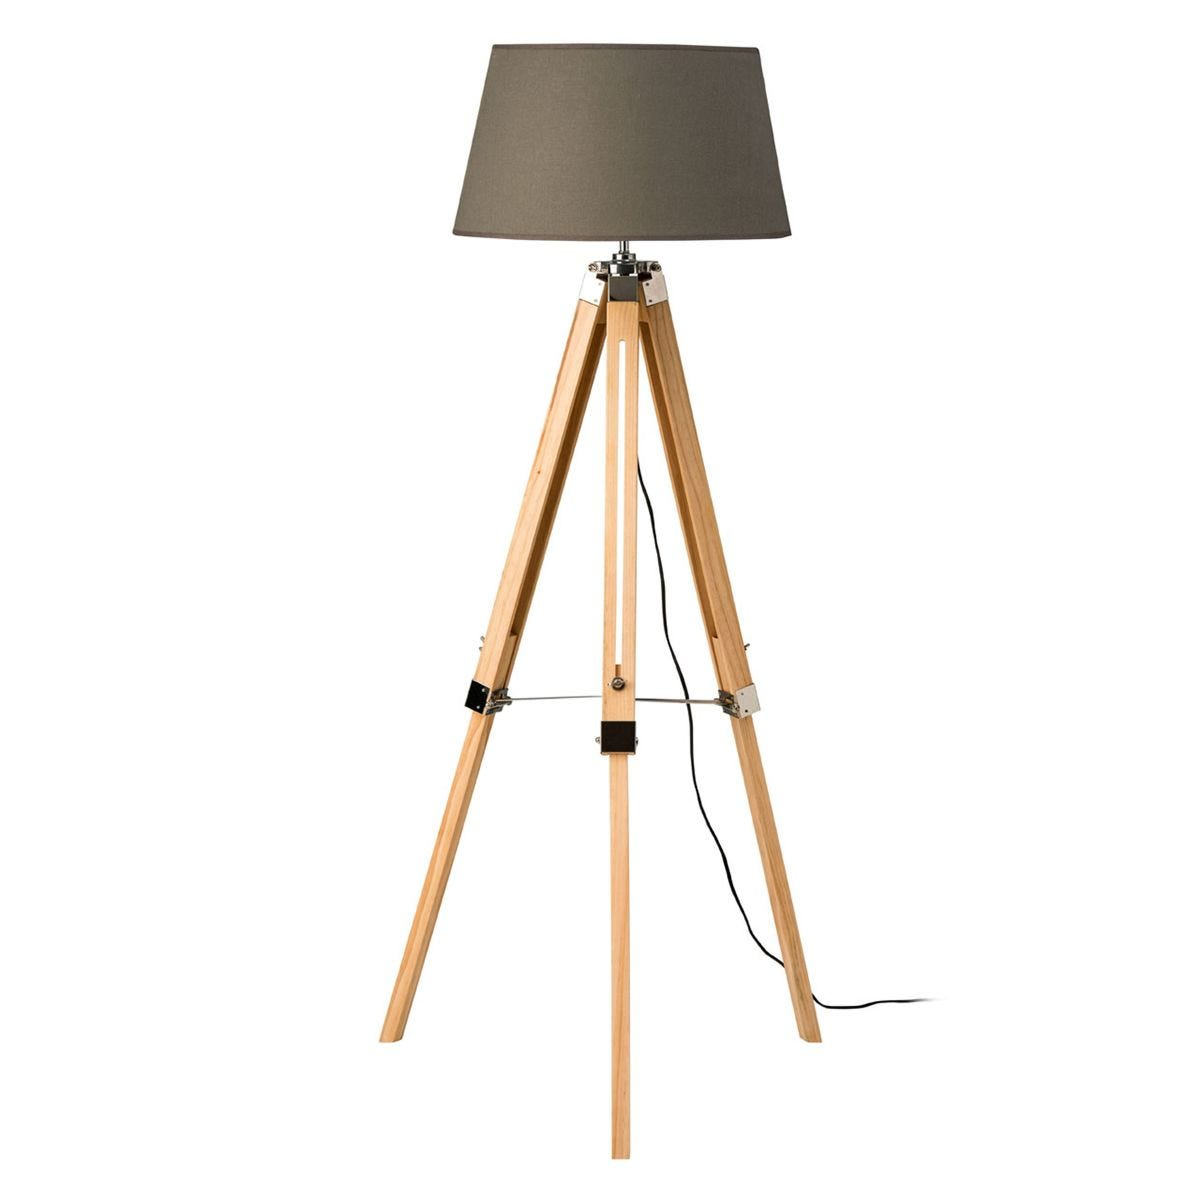 Premier Housewares Tripod Floor Lamp With Grey Shade Light Wood Base Robert Dyas